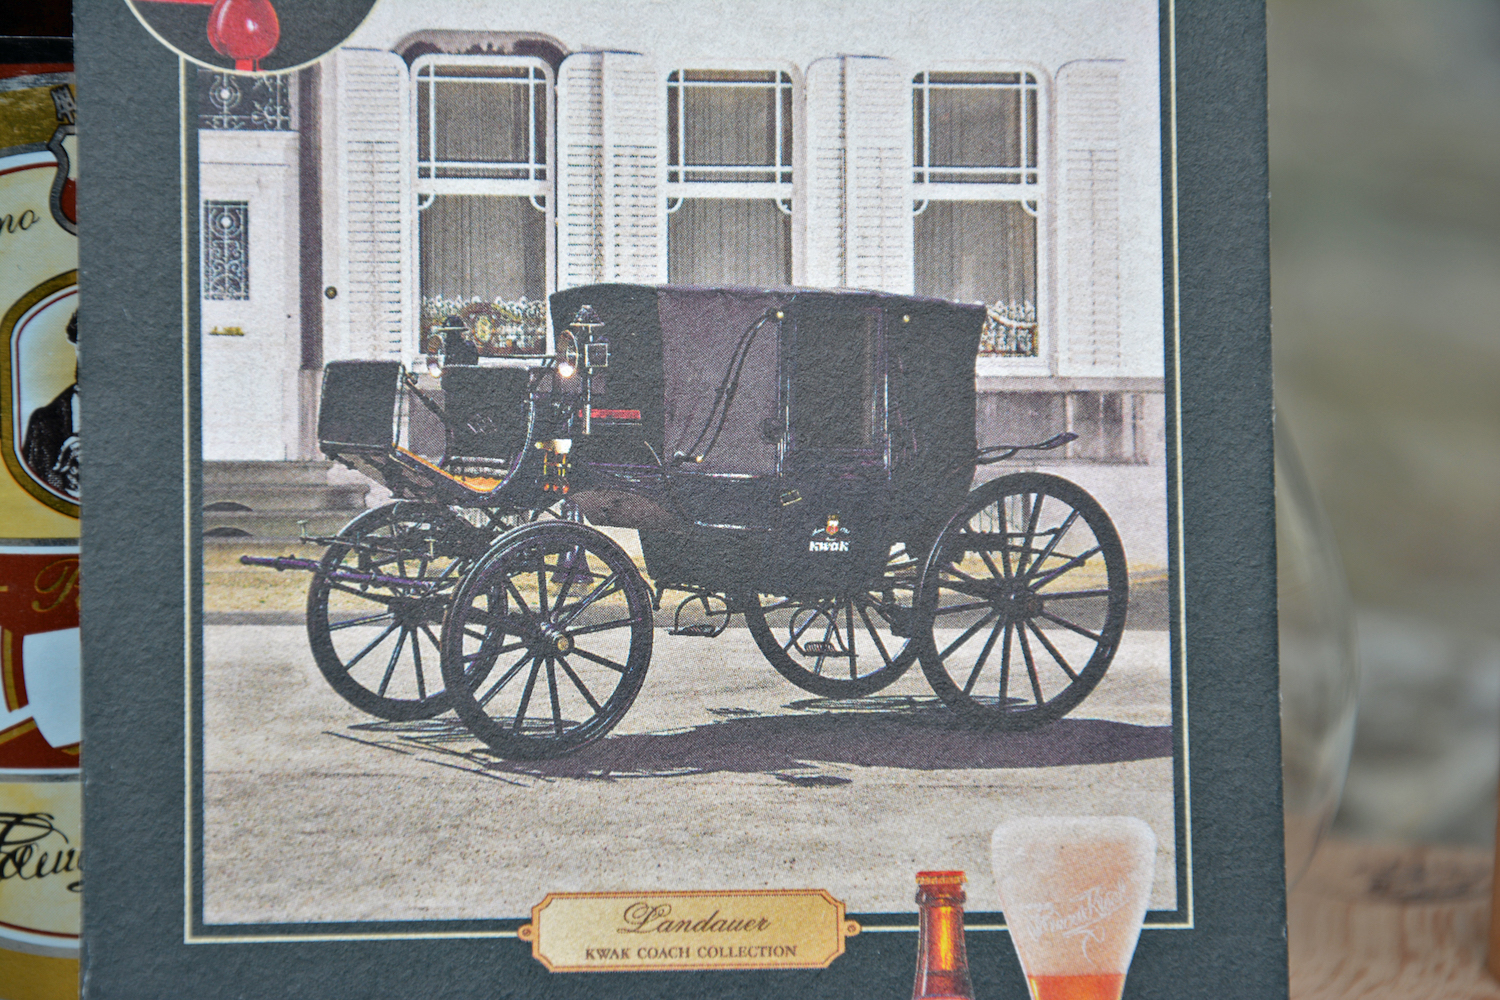 kwak carriage photo in close